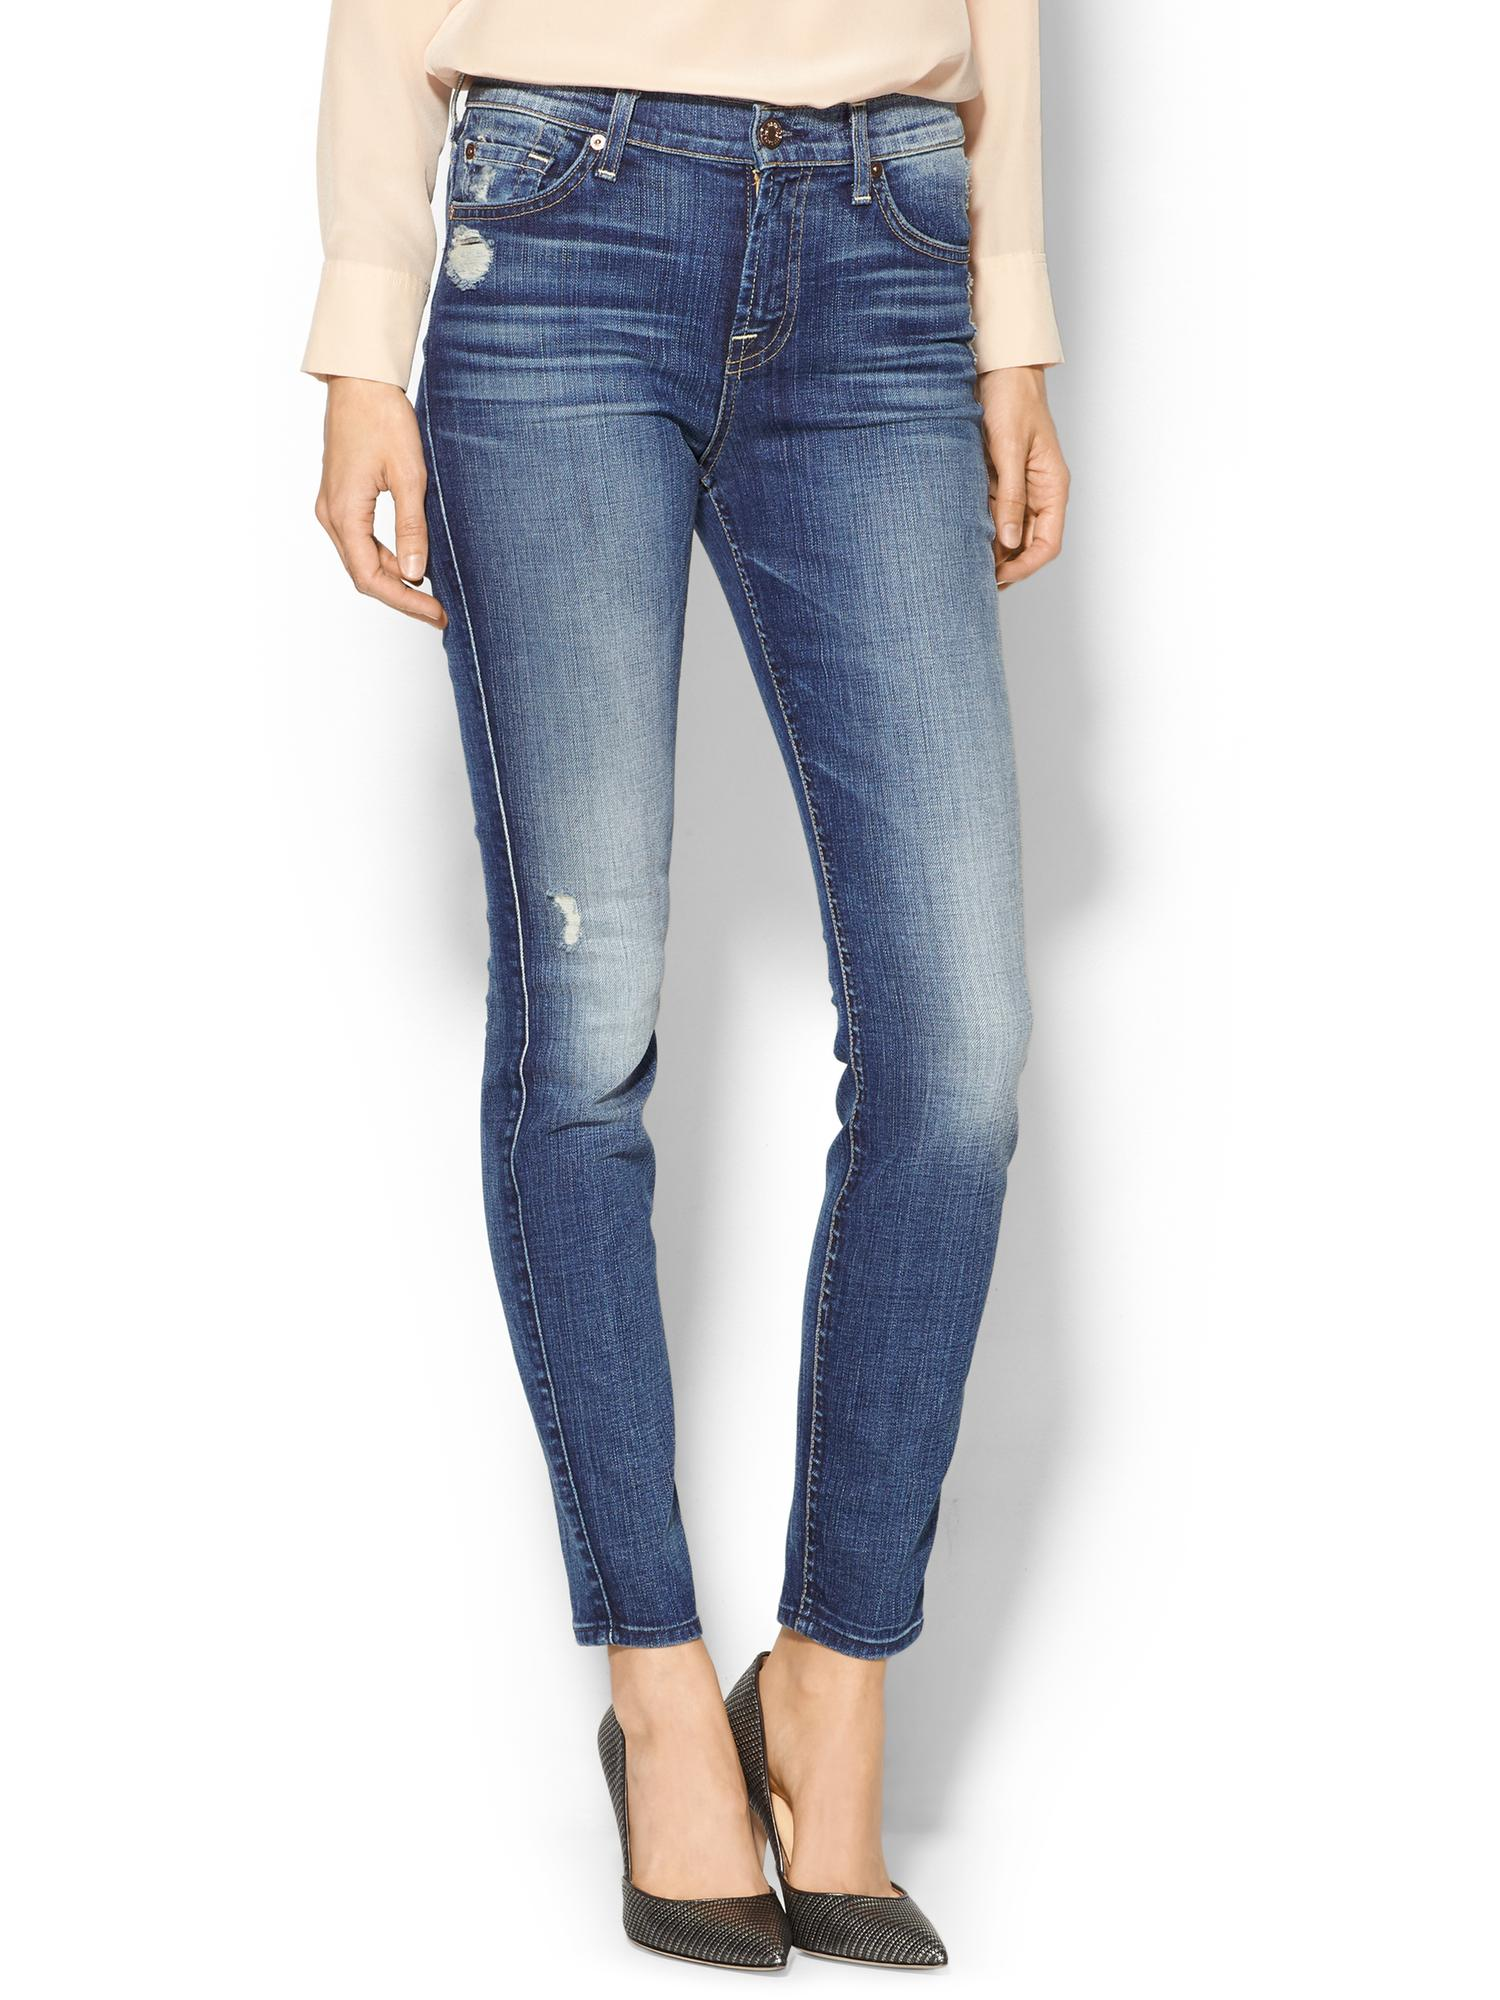 7 for all mankind the ankle skinny jean shop it to me all sales in one place shop it to me. Black Bedroom Furniture Sets. Home Design Ideas